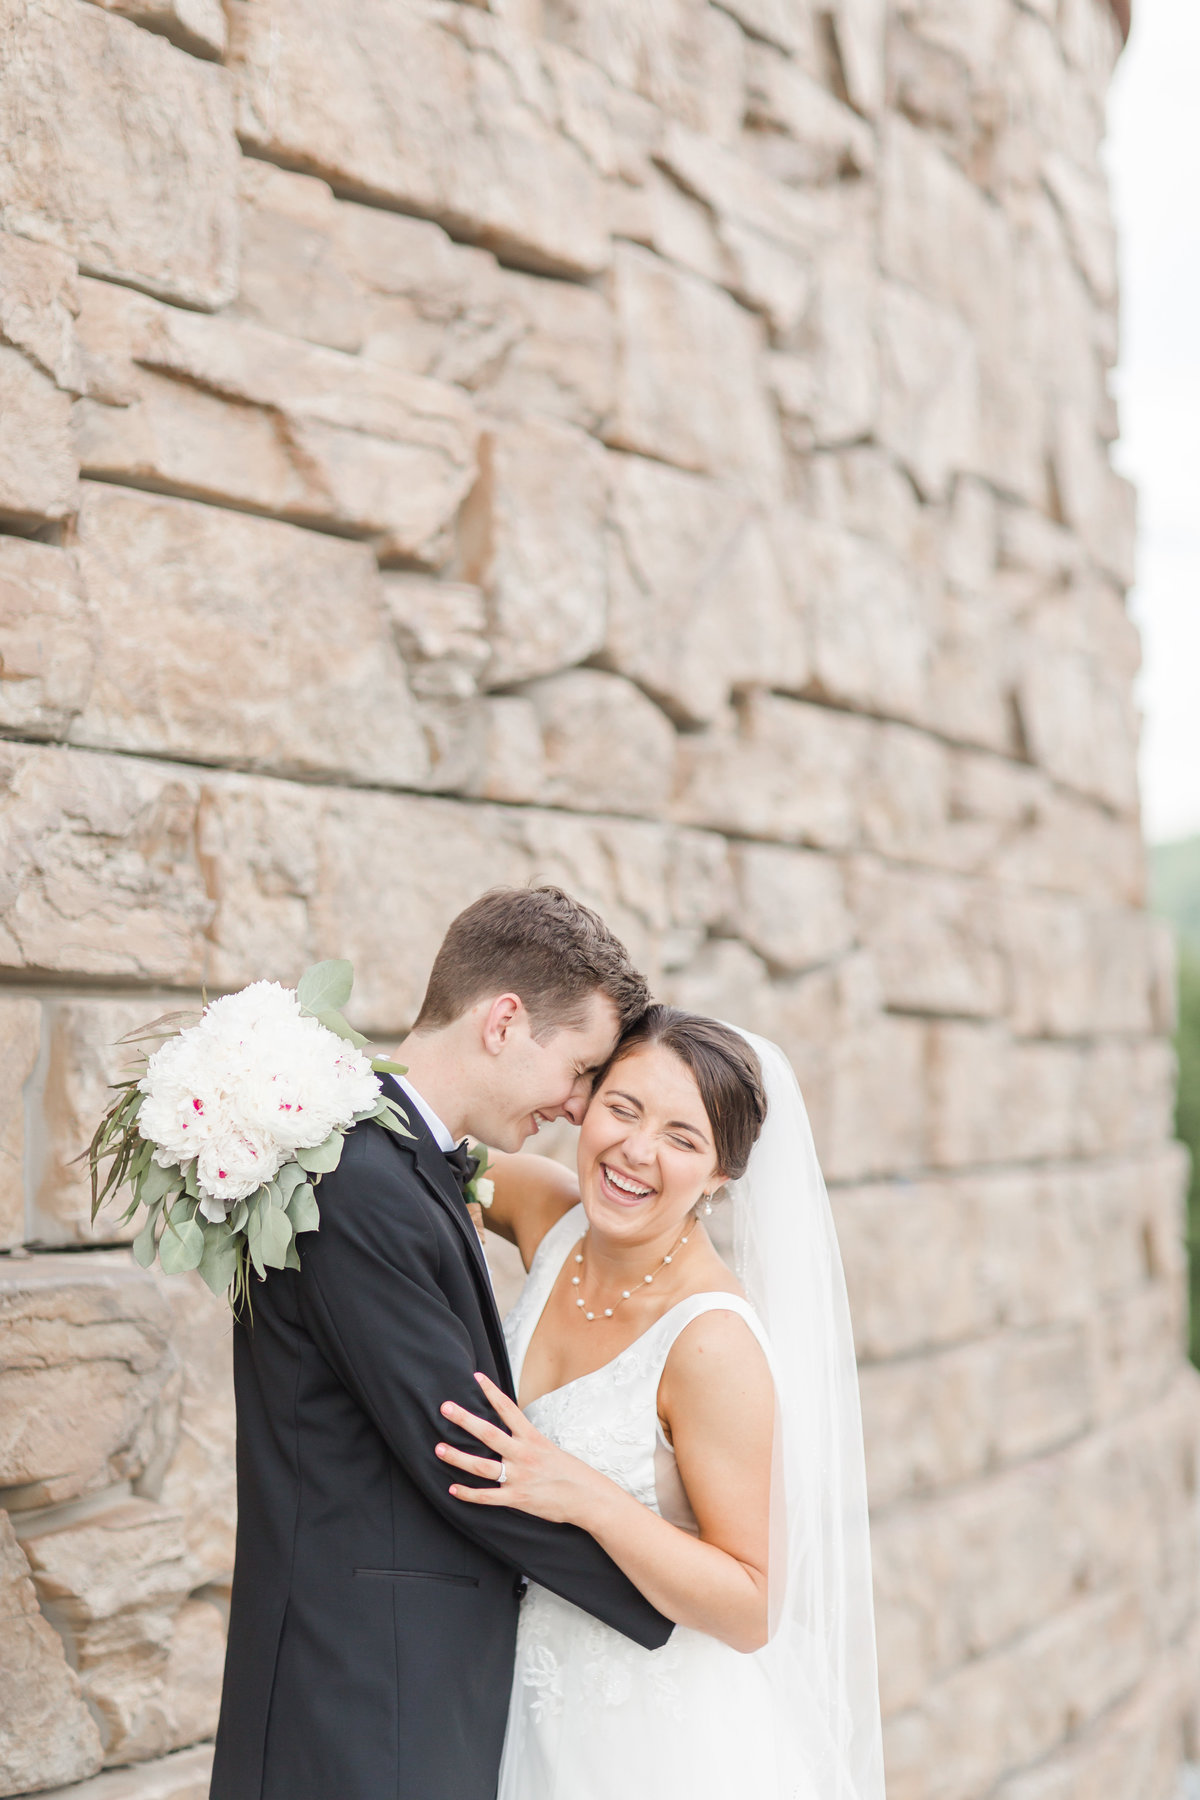 HYP_Kristina_and_Benedikt_Wedding_0071